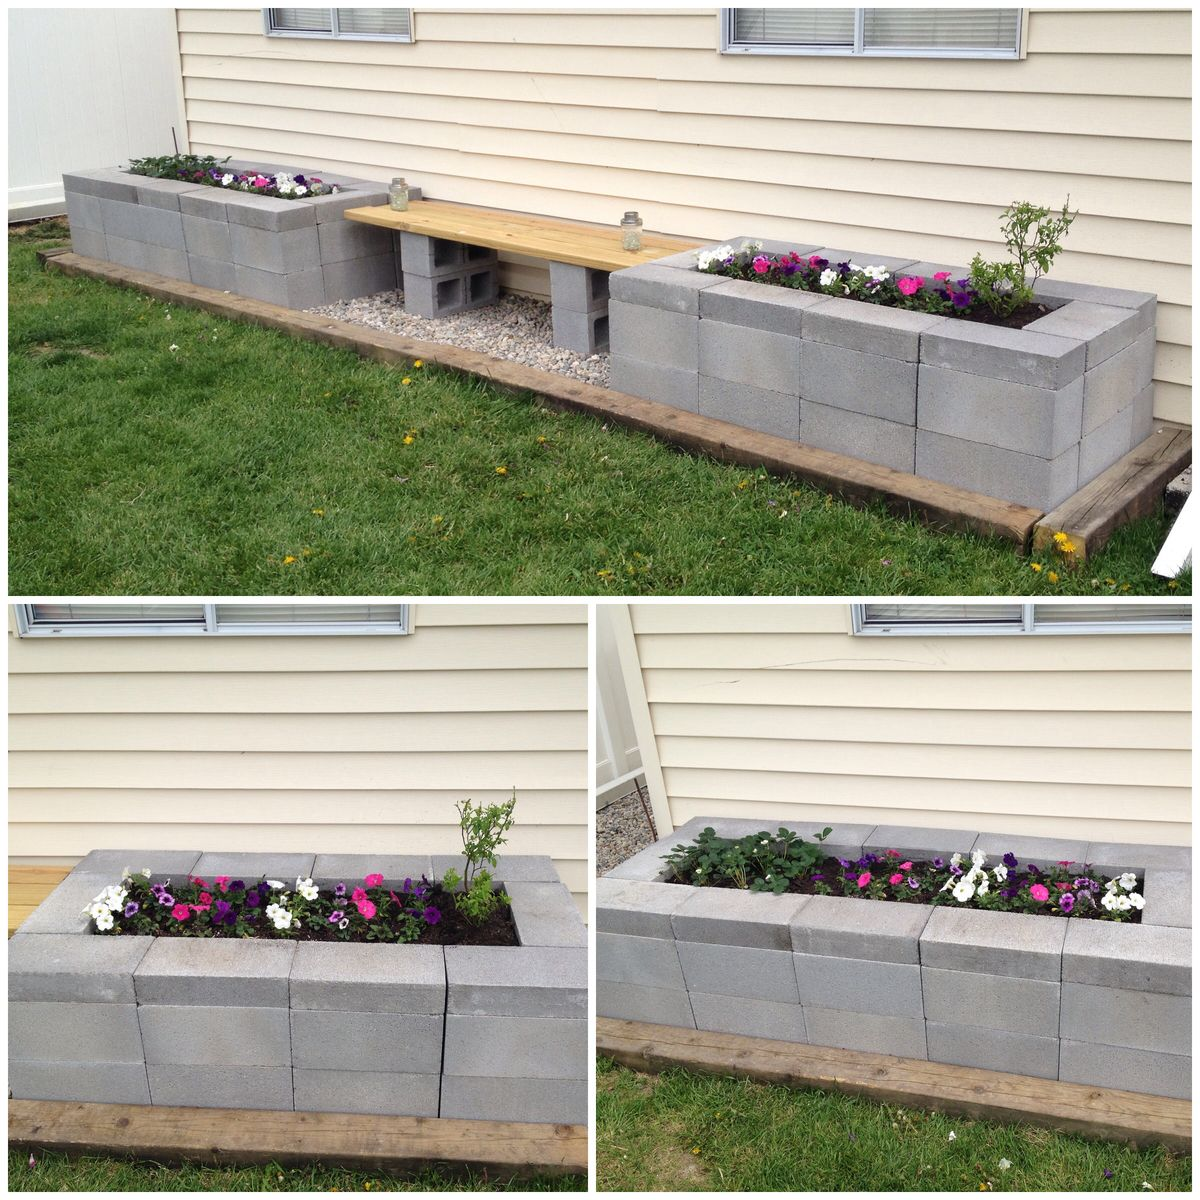 Cement block raised flower bed | Outdoors | Pinterest ... |Cinder Block Flower Bed Plans